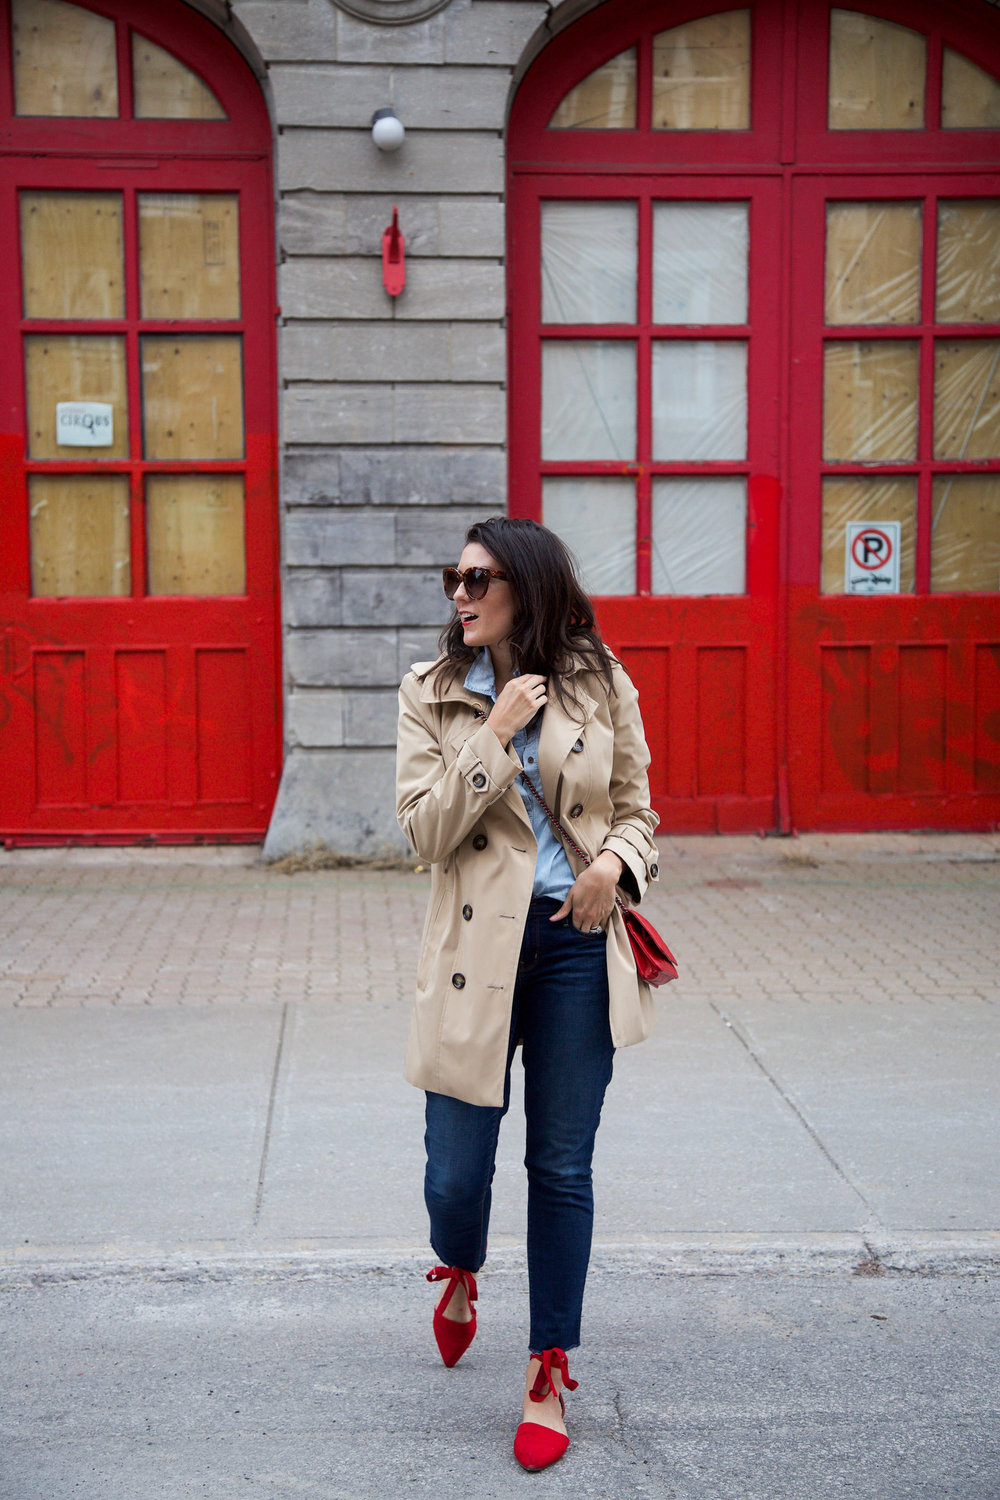 denim-on-denim-outfit-with-trench-coat-and-red-accessories2.jpg